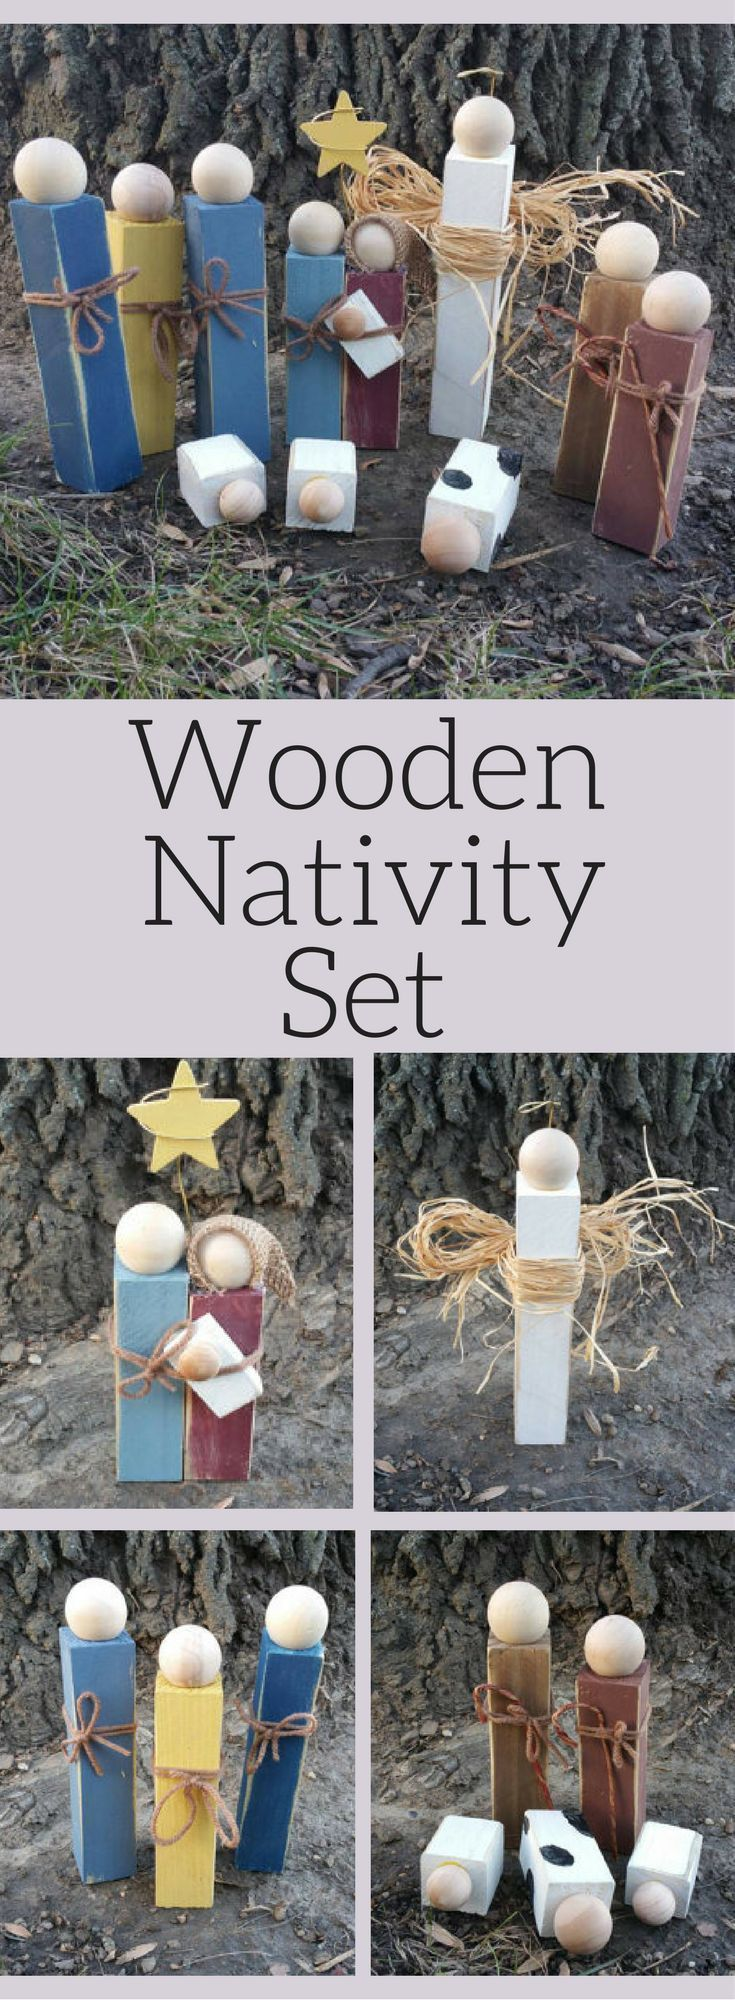 25+ unique Nativity scenes ideas on Pinterest